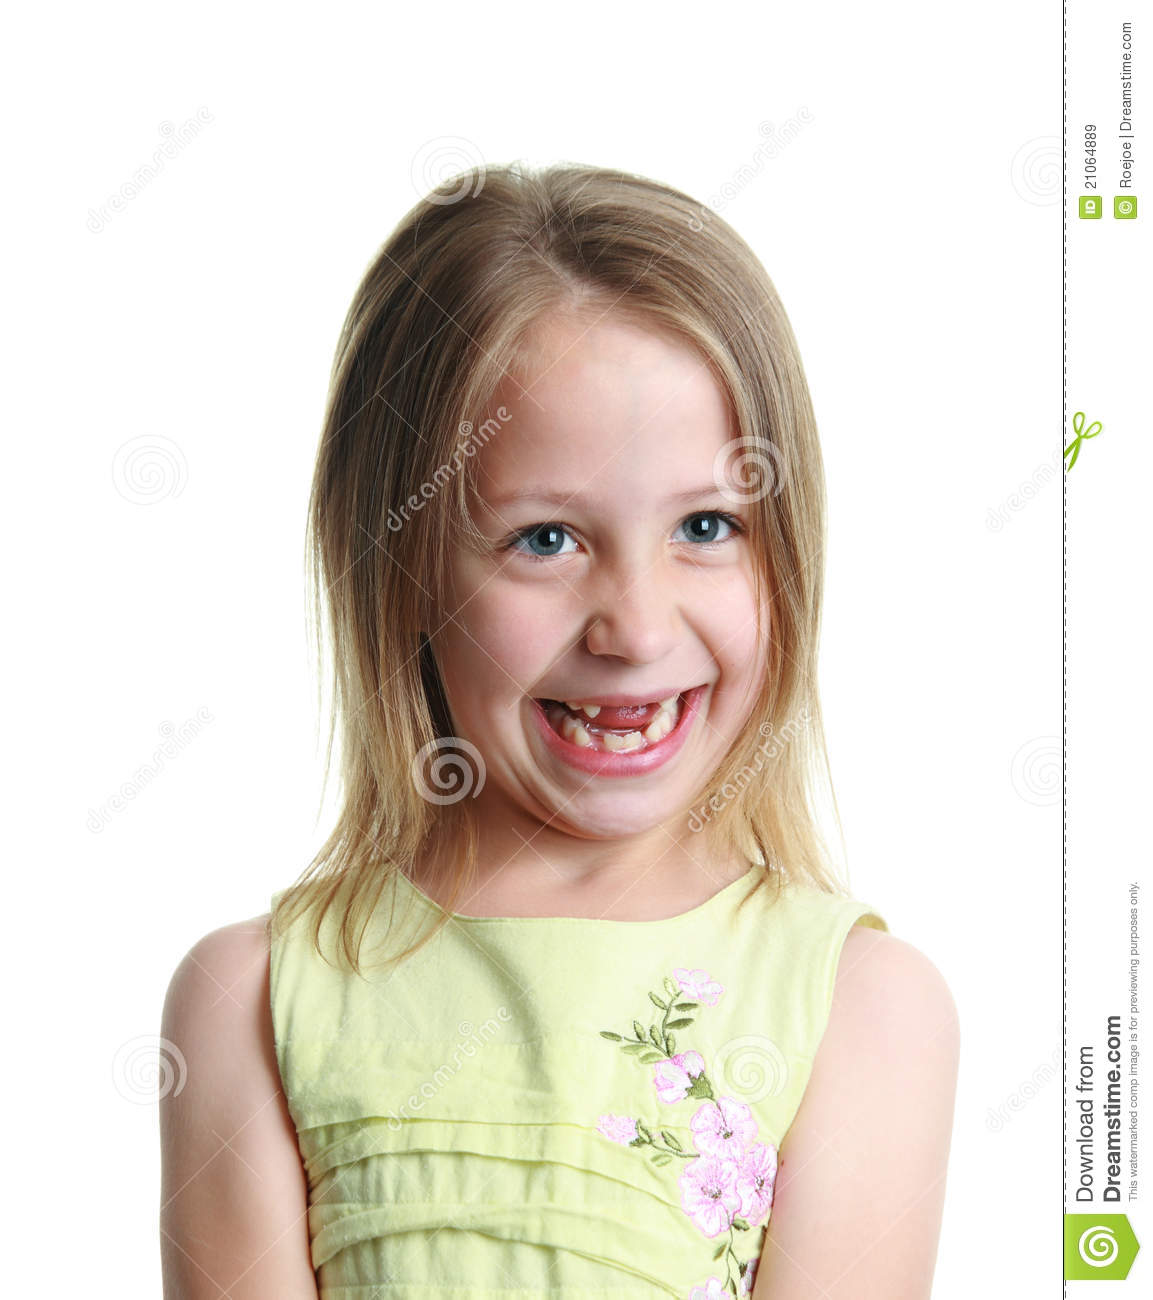 Little Girl Missing Her Two Front Teeth Stock Image ...